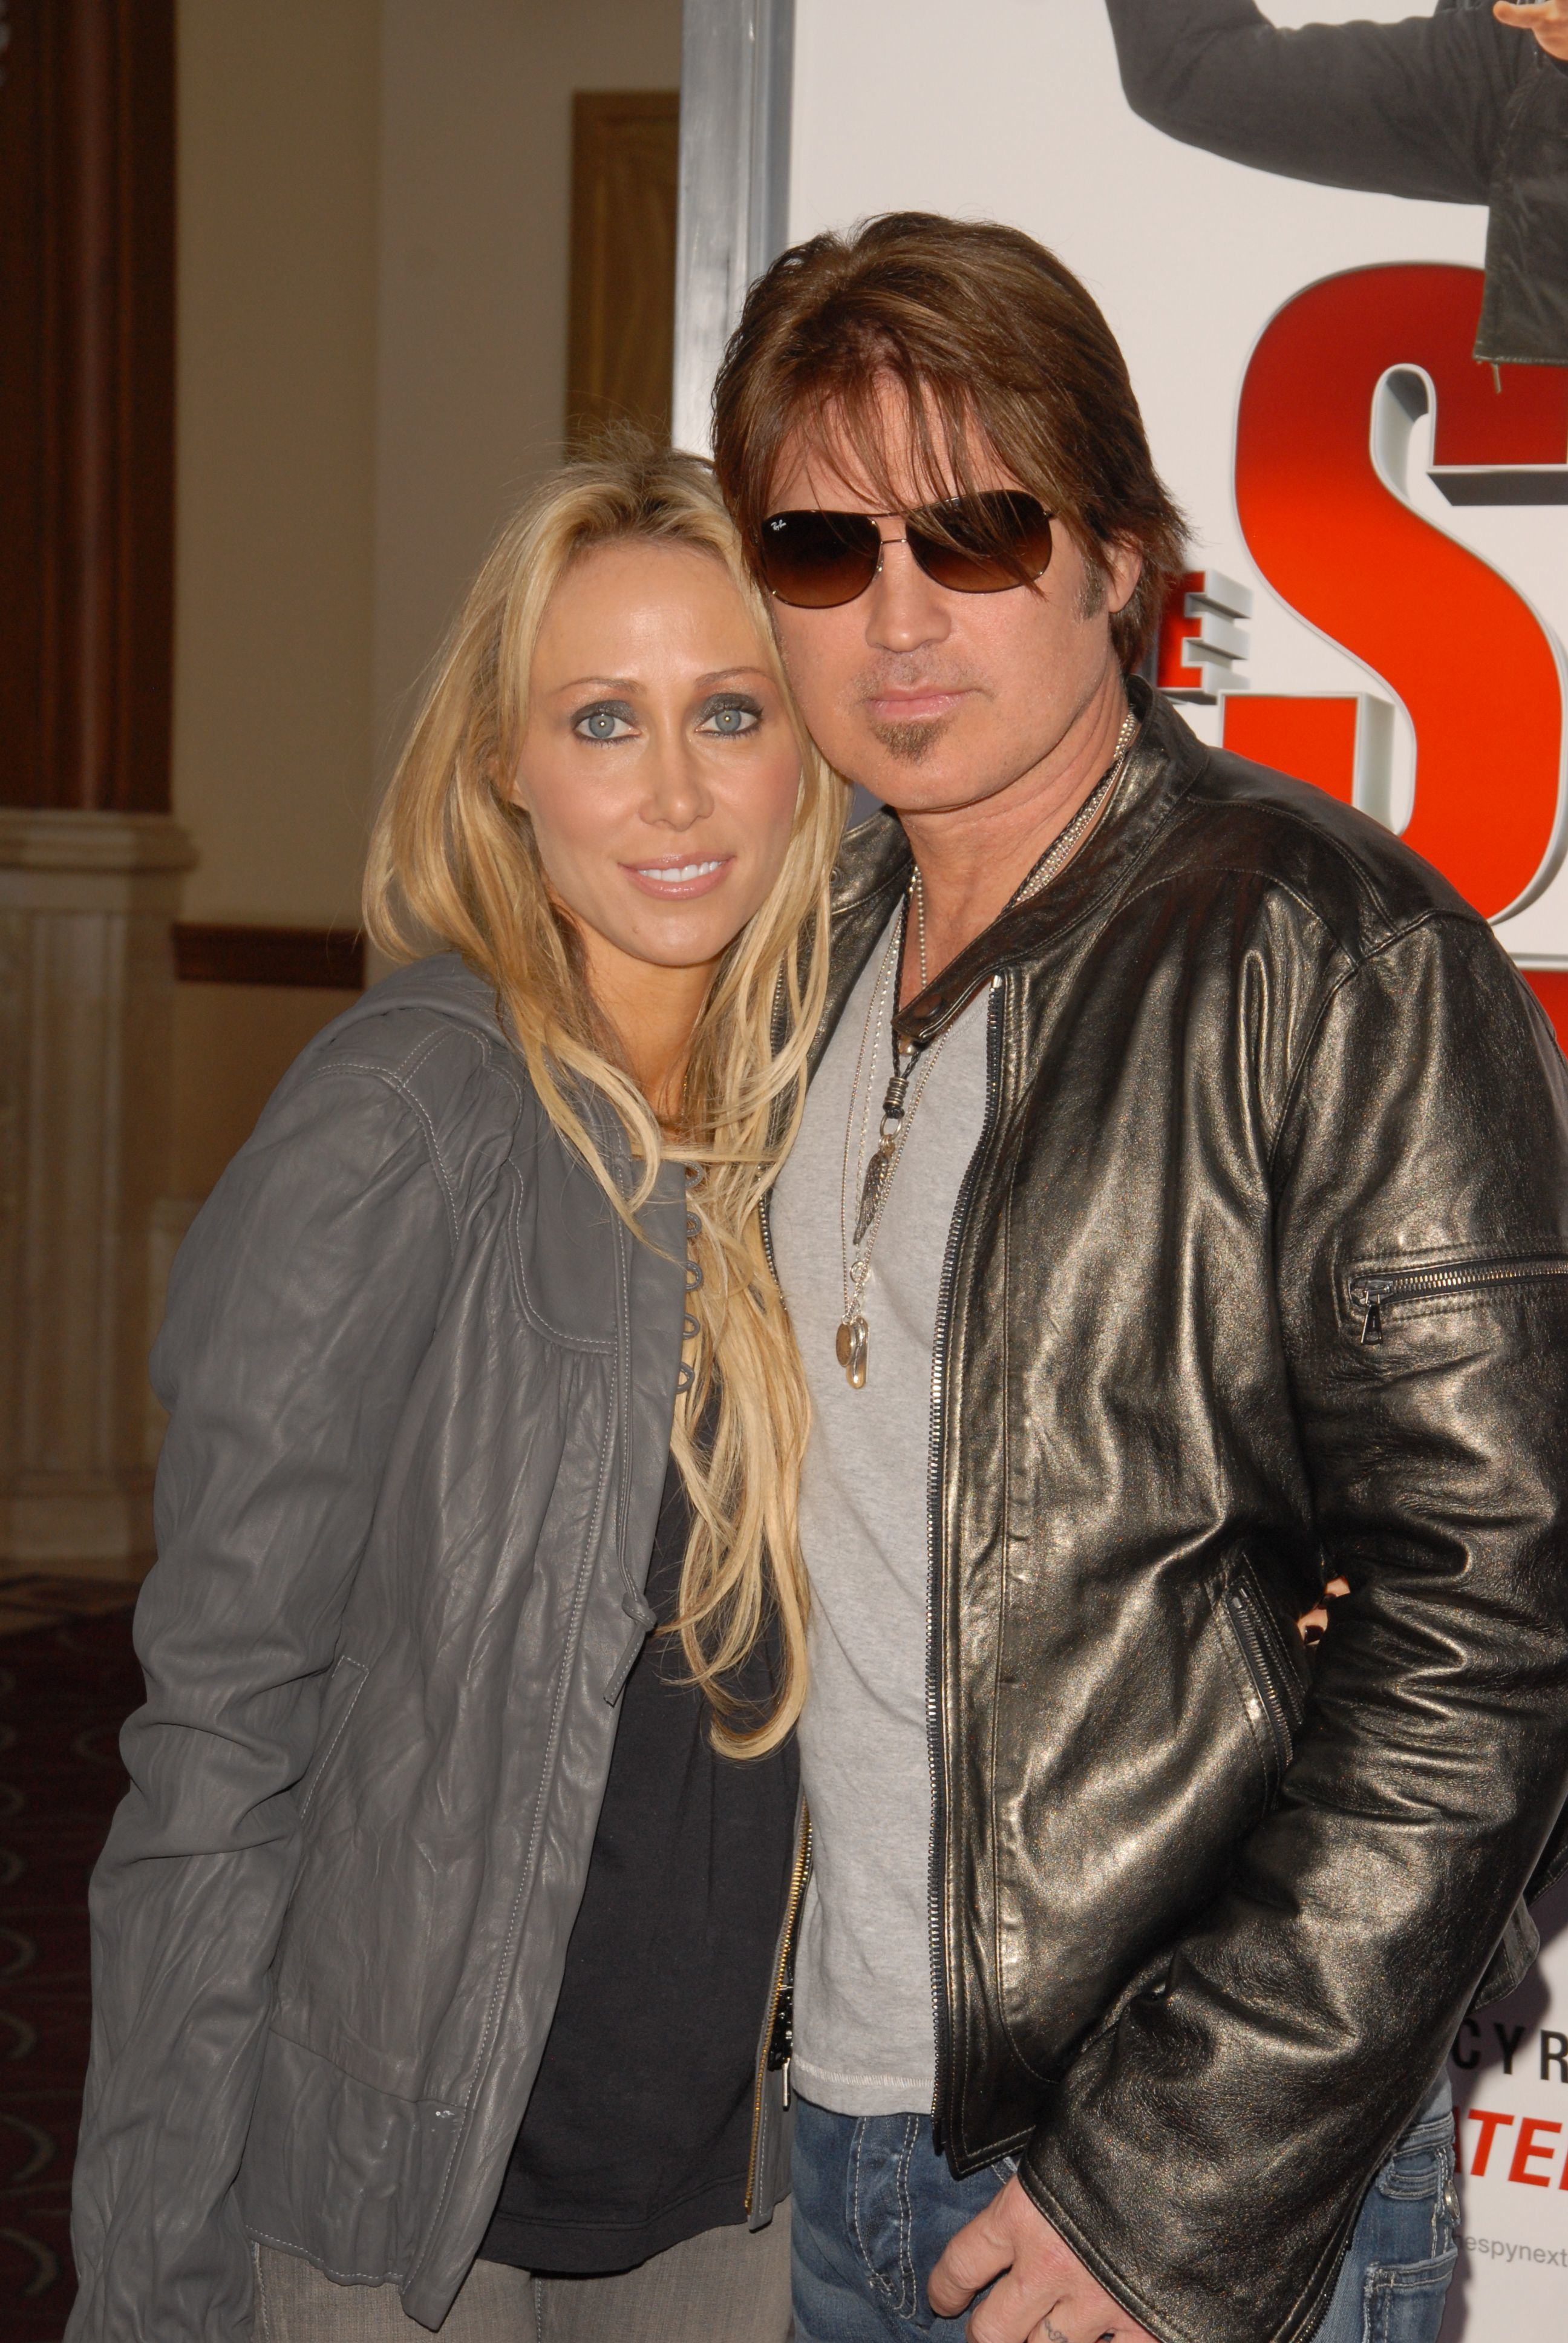 Billy Ray Cyrus Tish Cyrus split divorce filing Miley's parents divorcing